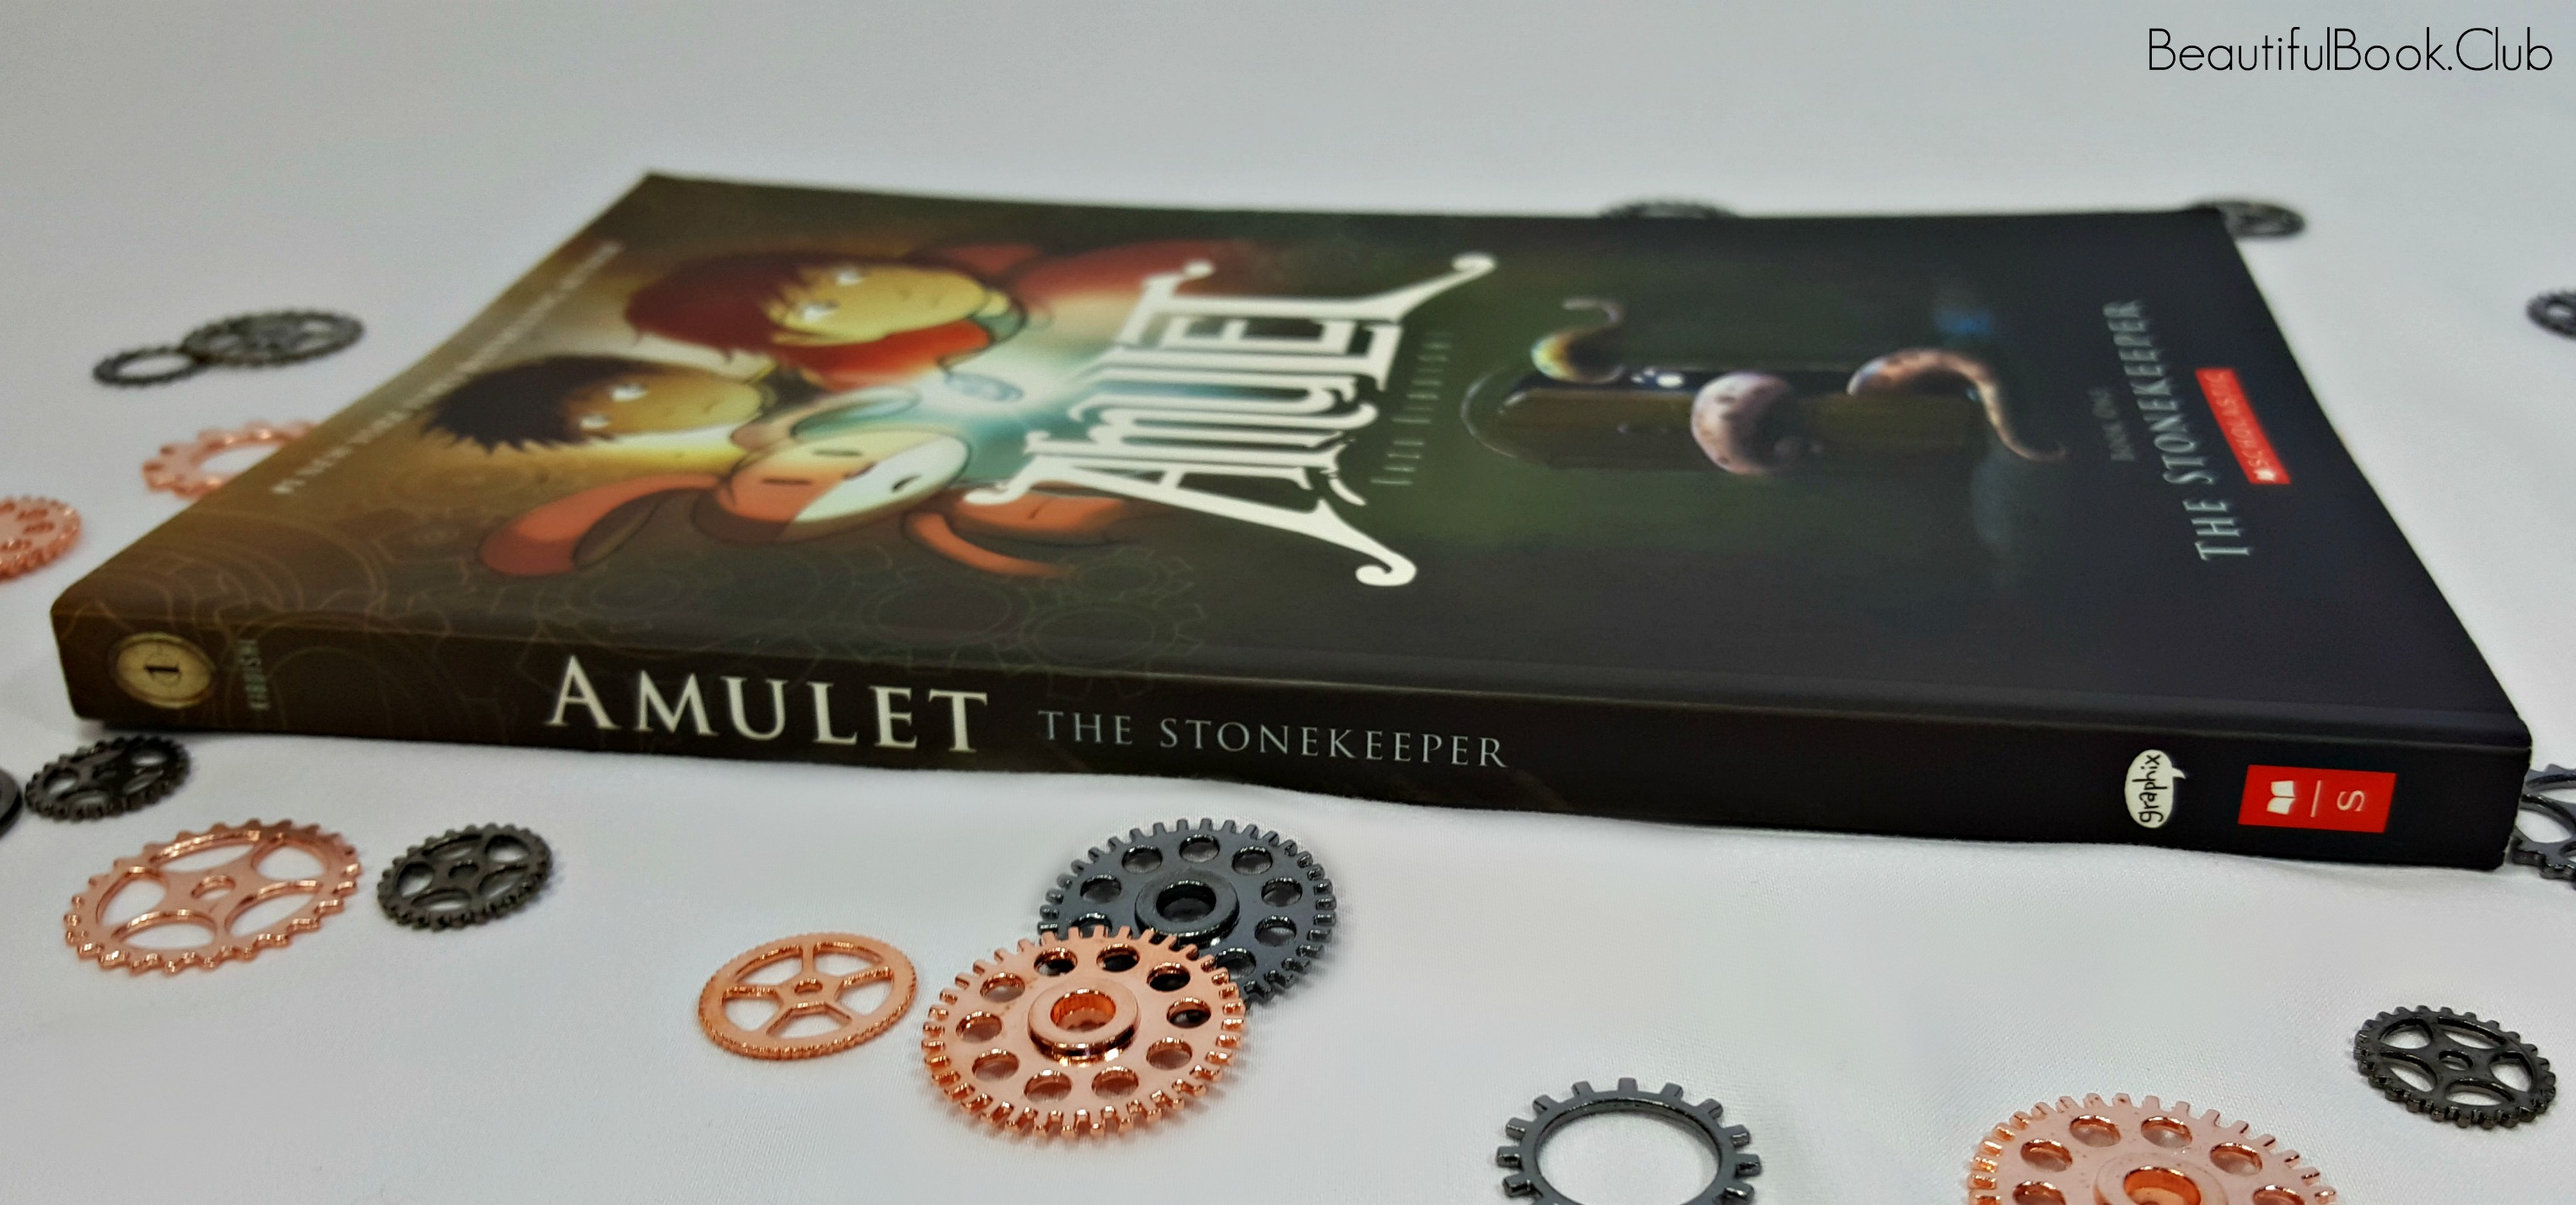 The Stonekeeper spine side view